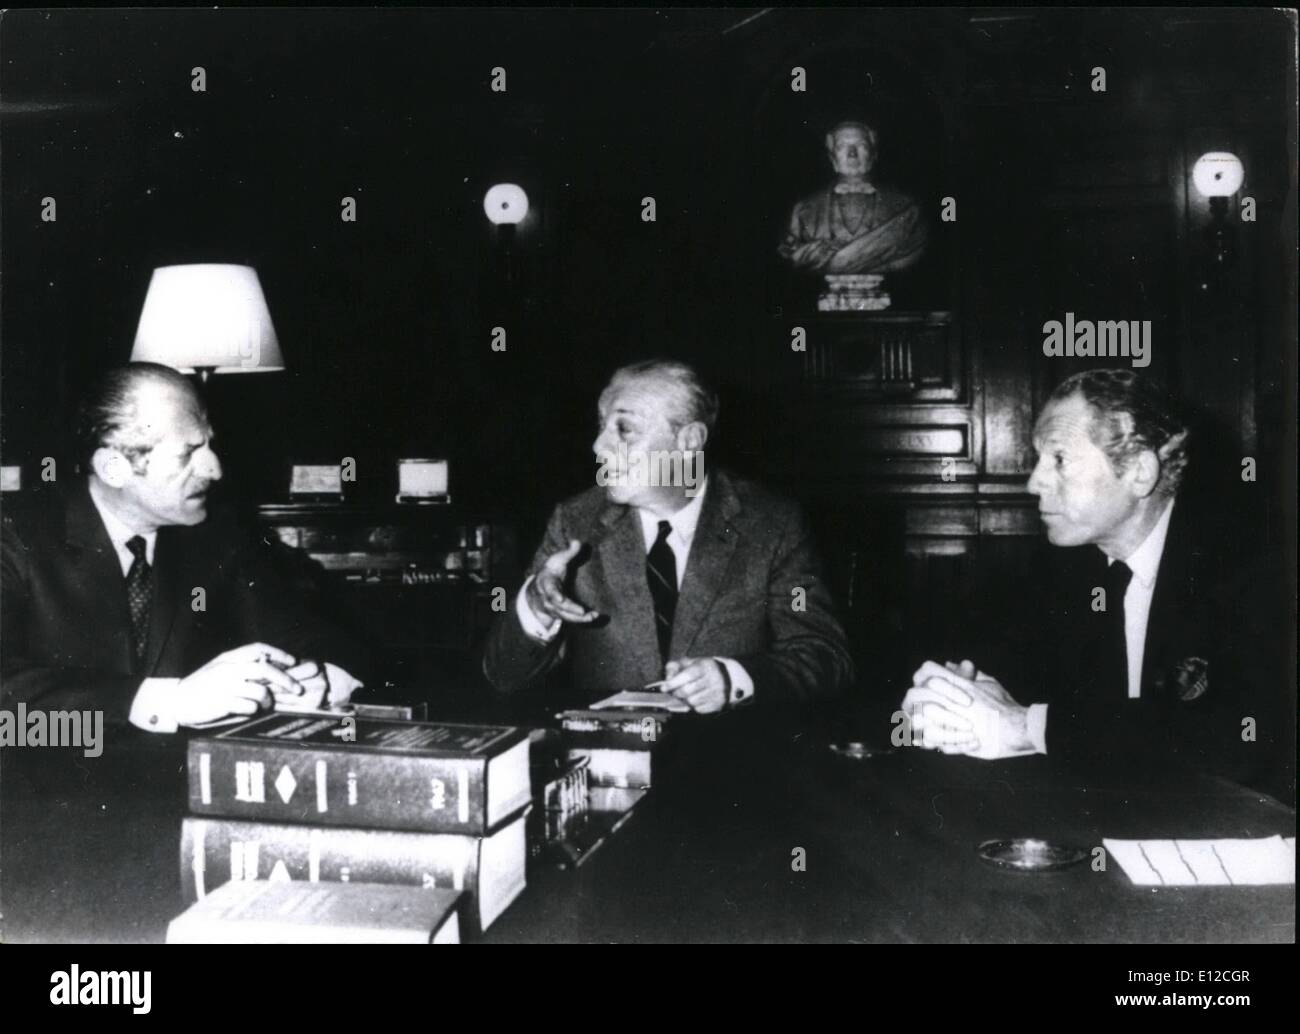 Dec. 12, 2011 - Banking lords of the 20th century, left to right, Baron Elie de Rothschild, Baron Guy de Rothschild and Alain. - Stock Image